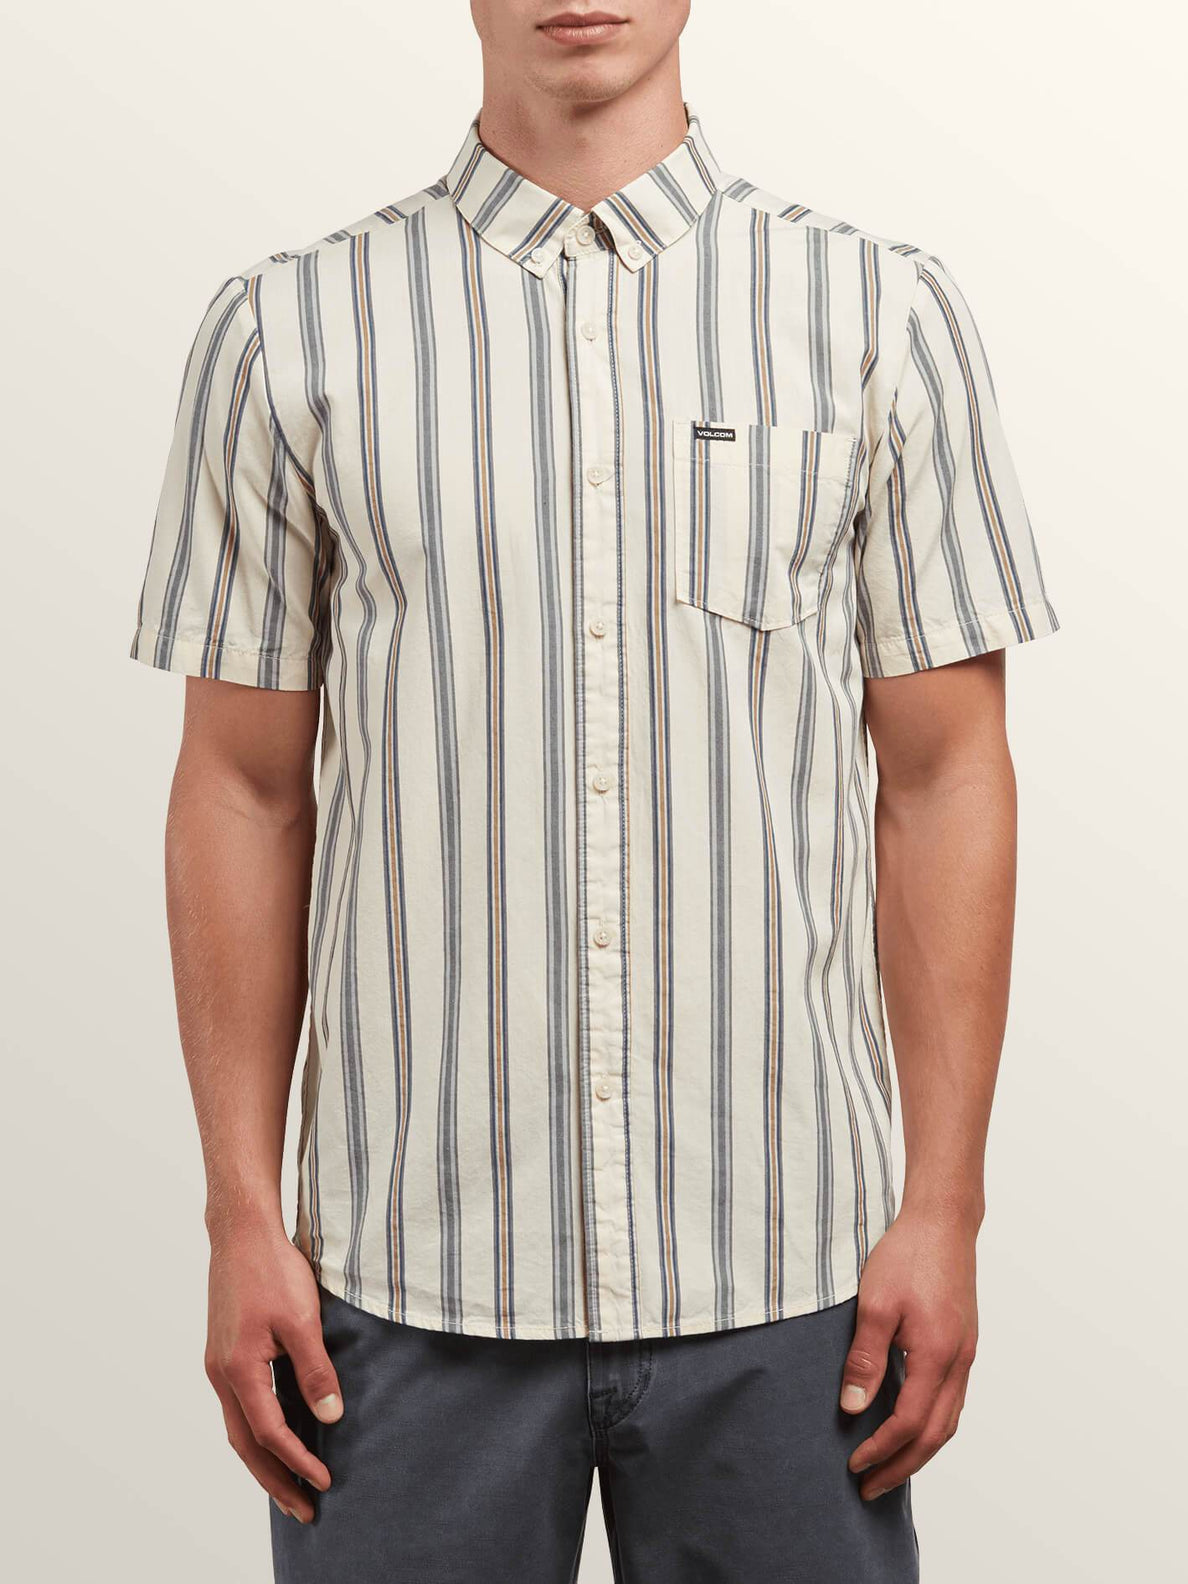 Mix Bag Short Sleeve Shirt In White Flash, Front View